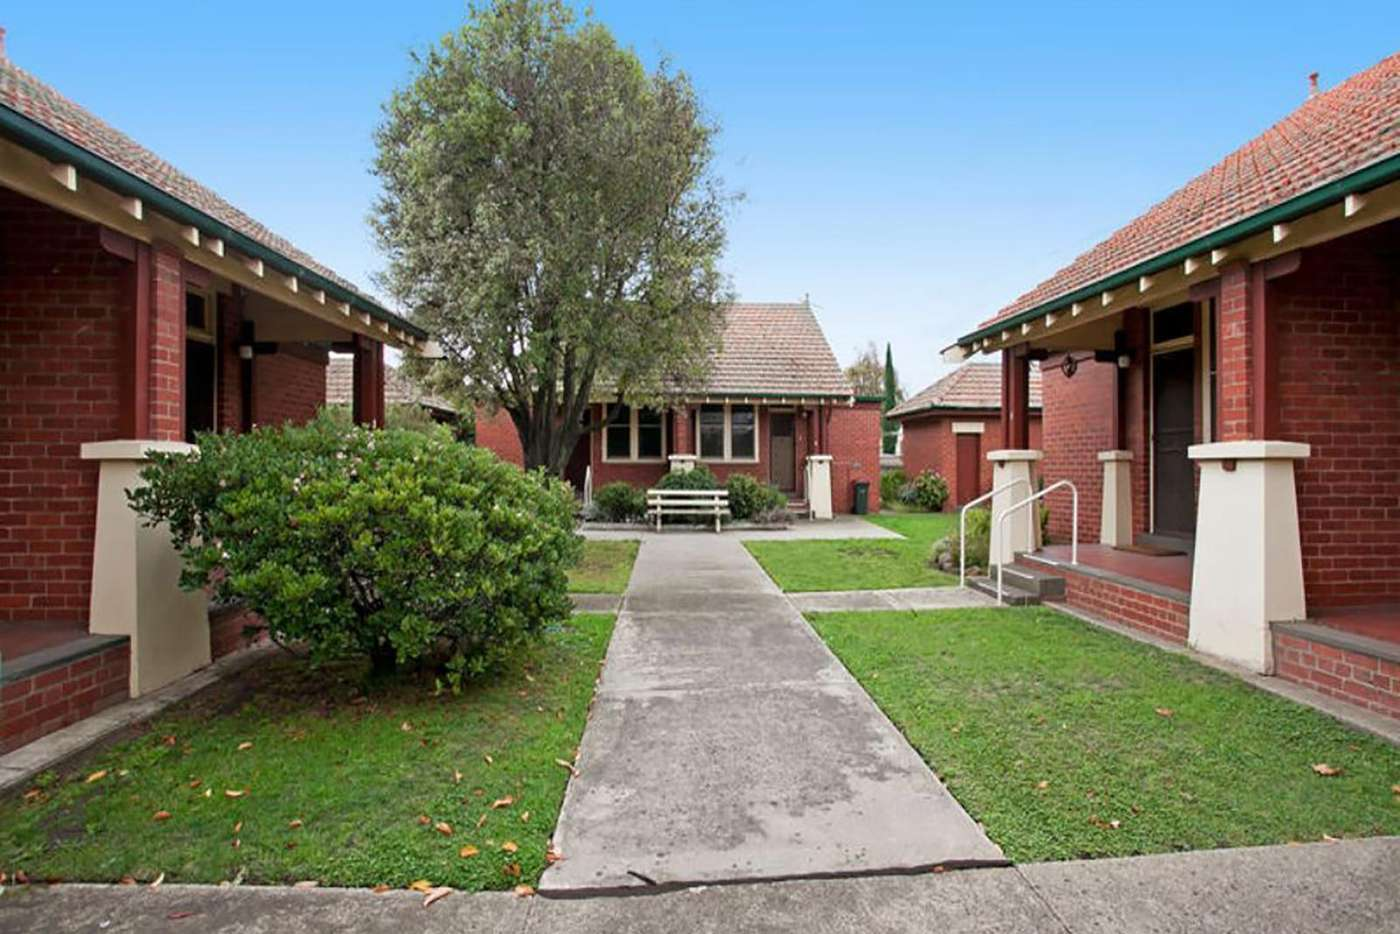 Main view of Homely unit listing, 3/73 McKillop Street, Geelong VIC 3220